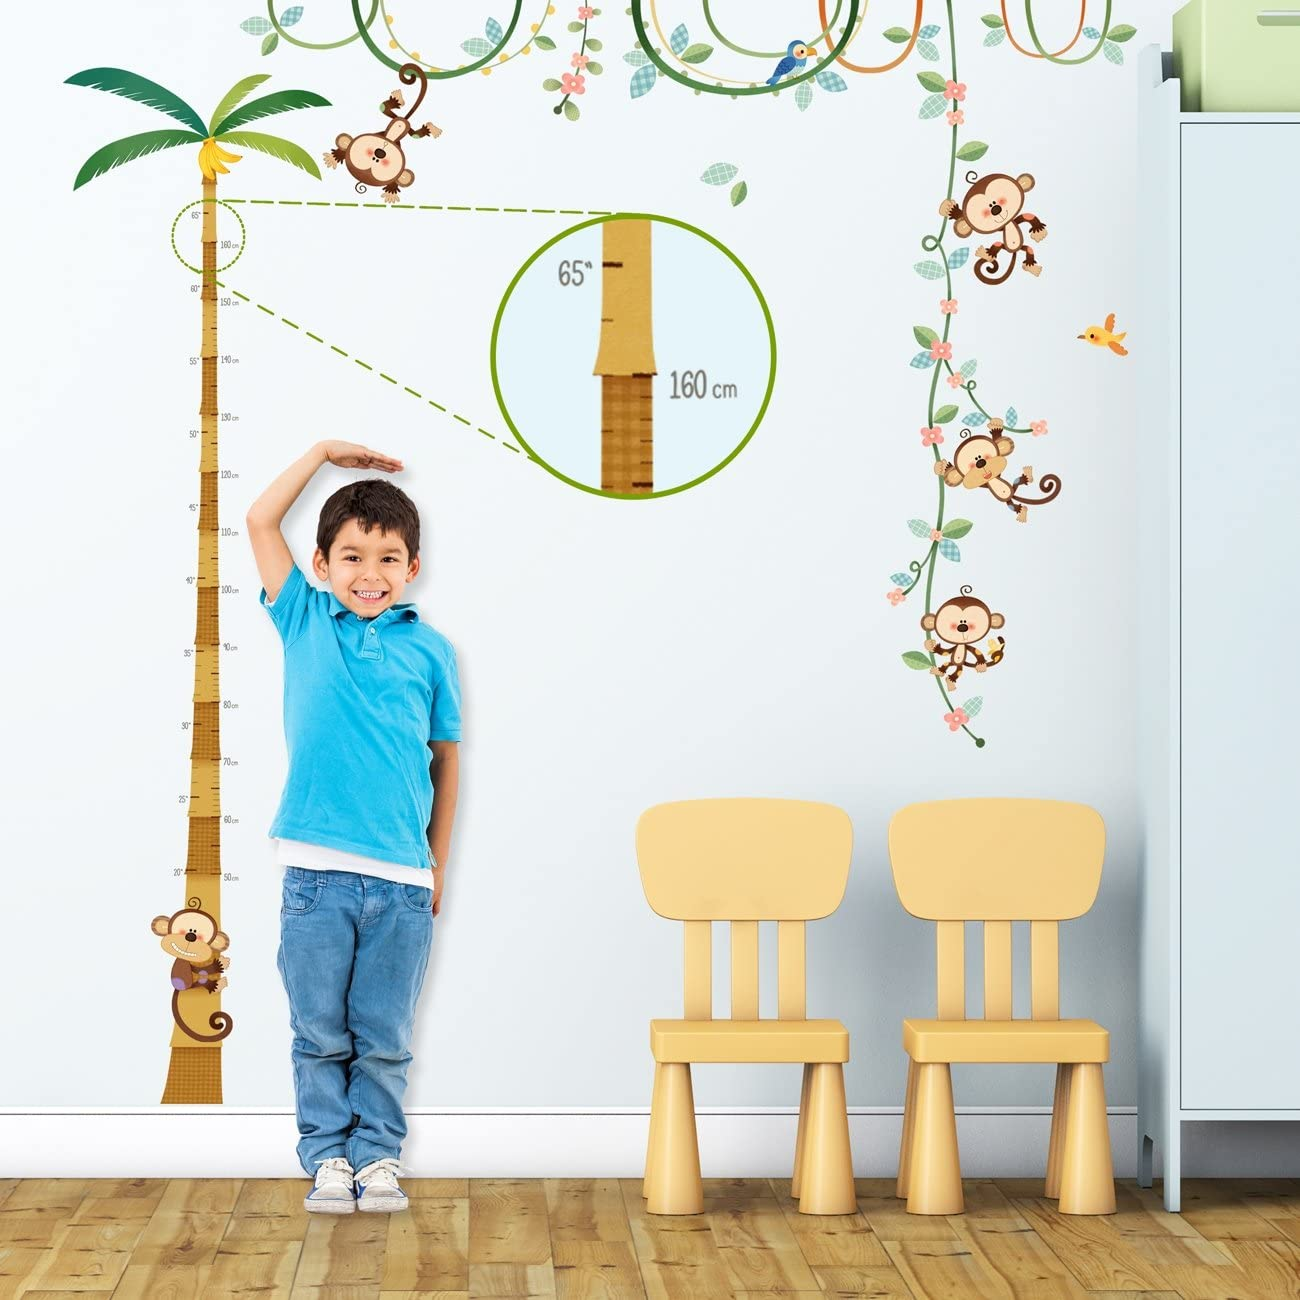 DECOWALL DA-1607 Monkey Height Chart Kids Wall Decals Wall Stickers Peel and Stick Removable Wall Stickers for Kids Nursery Bedroom Living Room